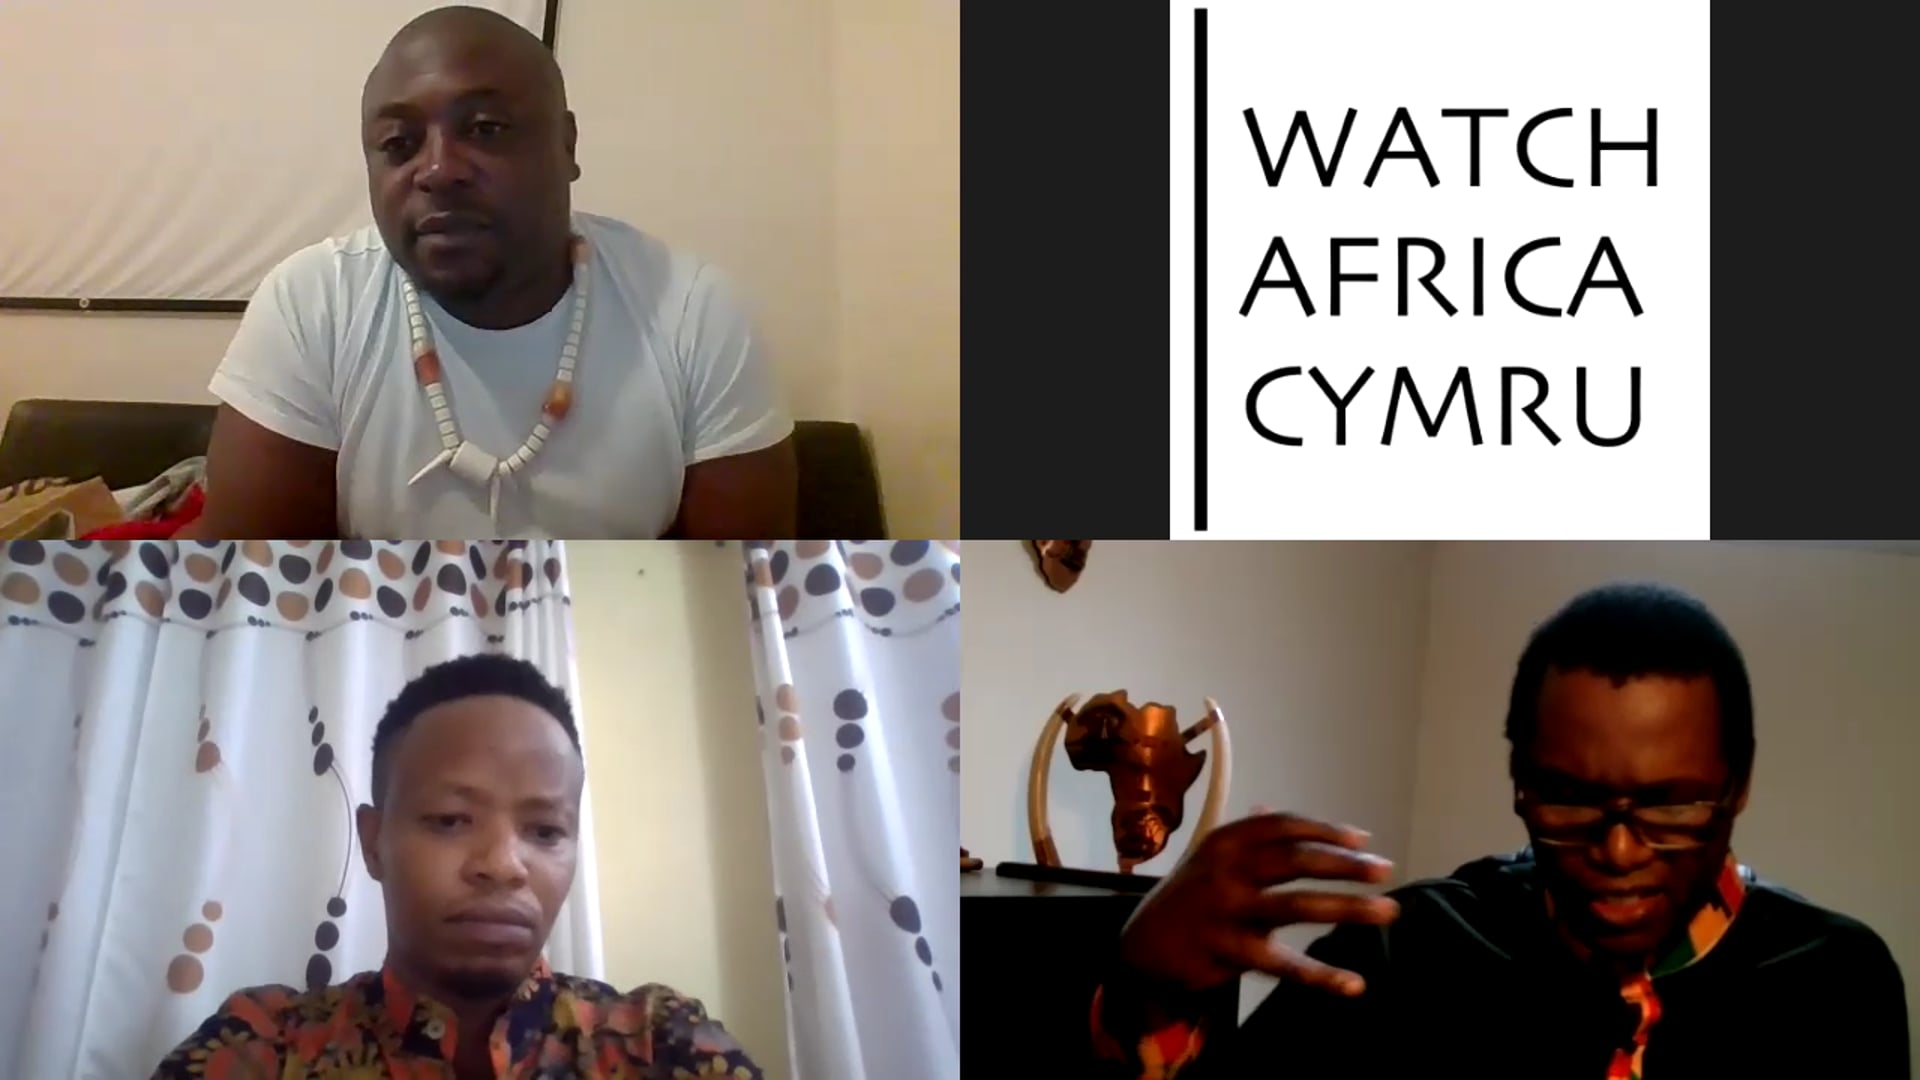 'Wend Kuuni' Q&A with Eric Ngalle Charles, Bevin Magama annd Chaired by Fadhili Maghiya